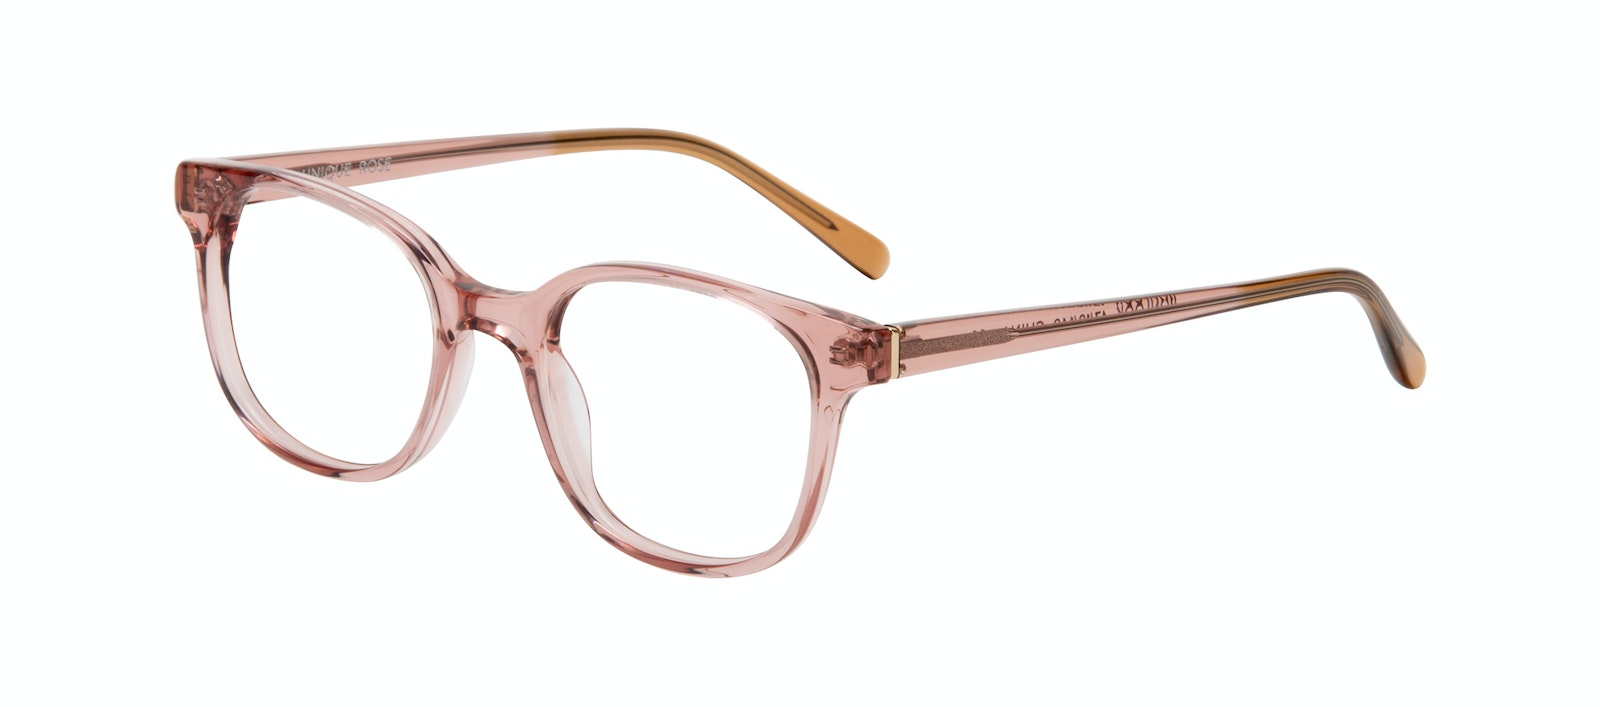 Affordable Fashion Glasses Square Eyeglasses Women Unique Rose Tilt